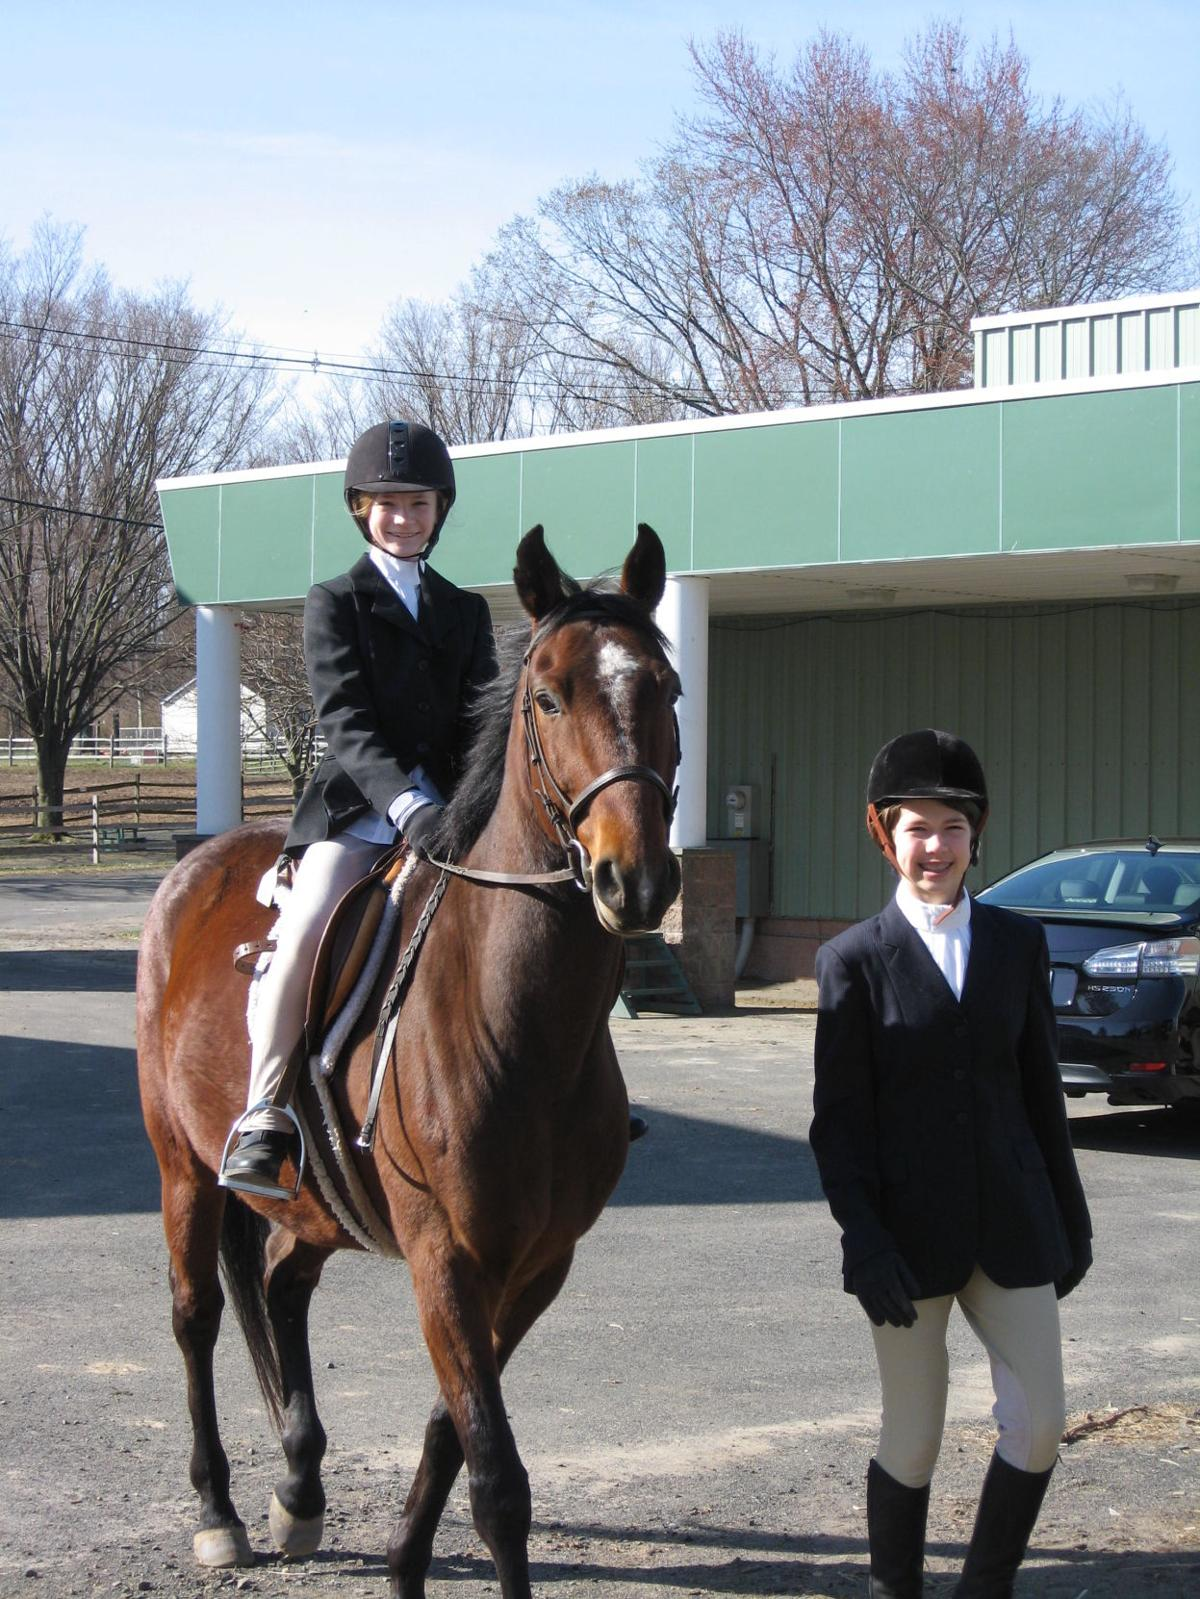 Lord Stirling Stable Dressage Show March 11, 2018